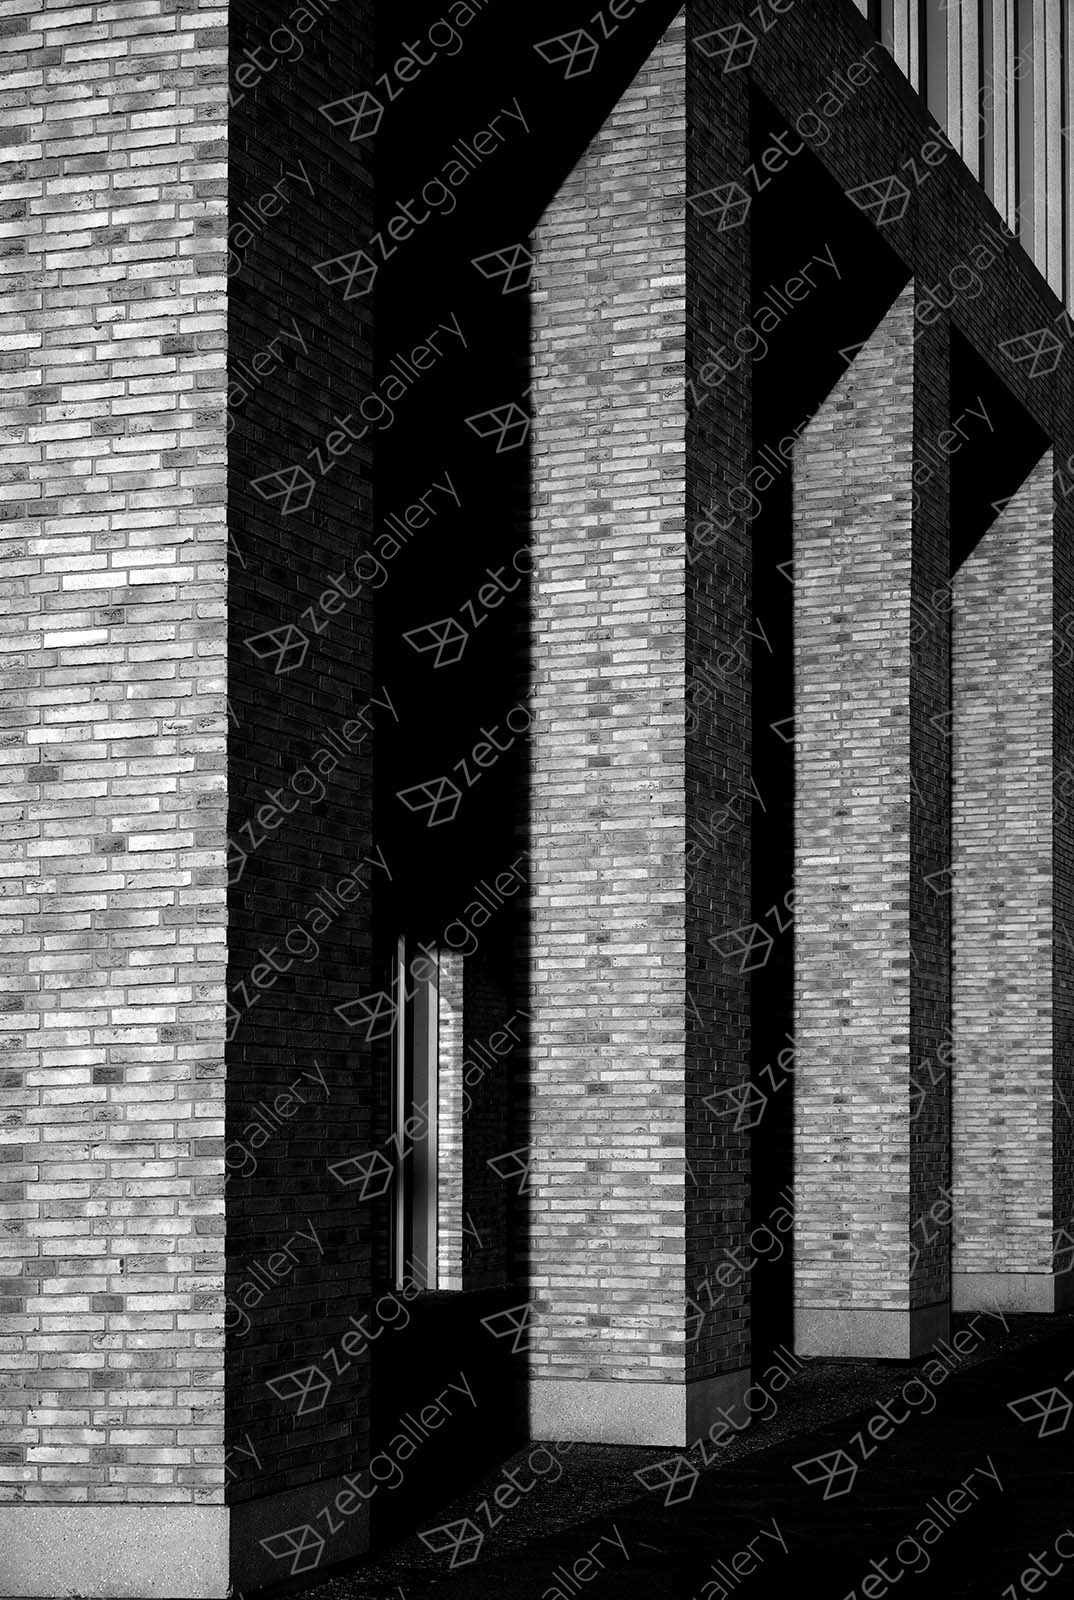 Being and Light 2, original Architecture Digital Photography by Goeth Zilla